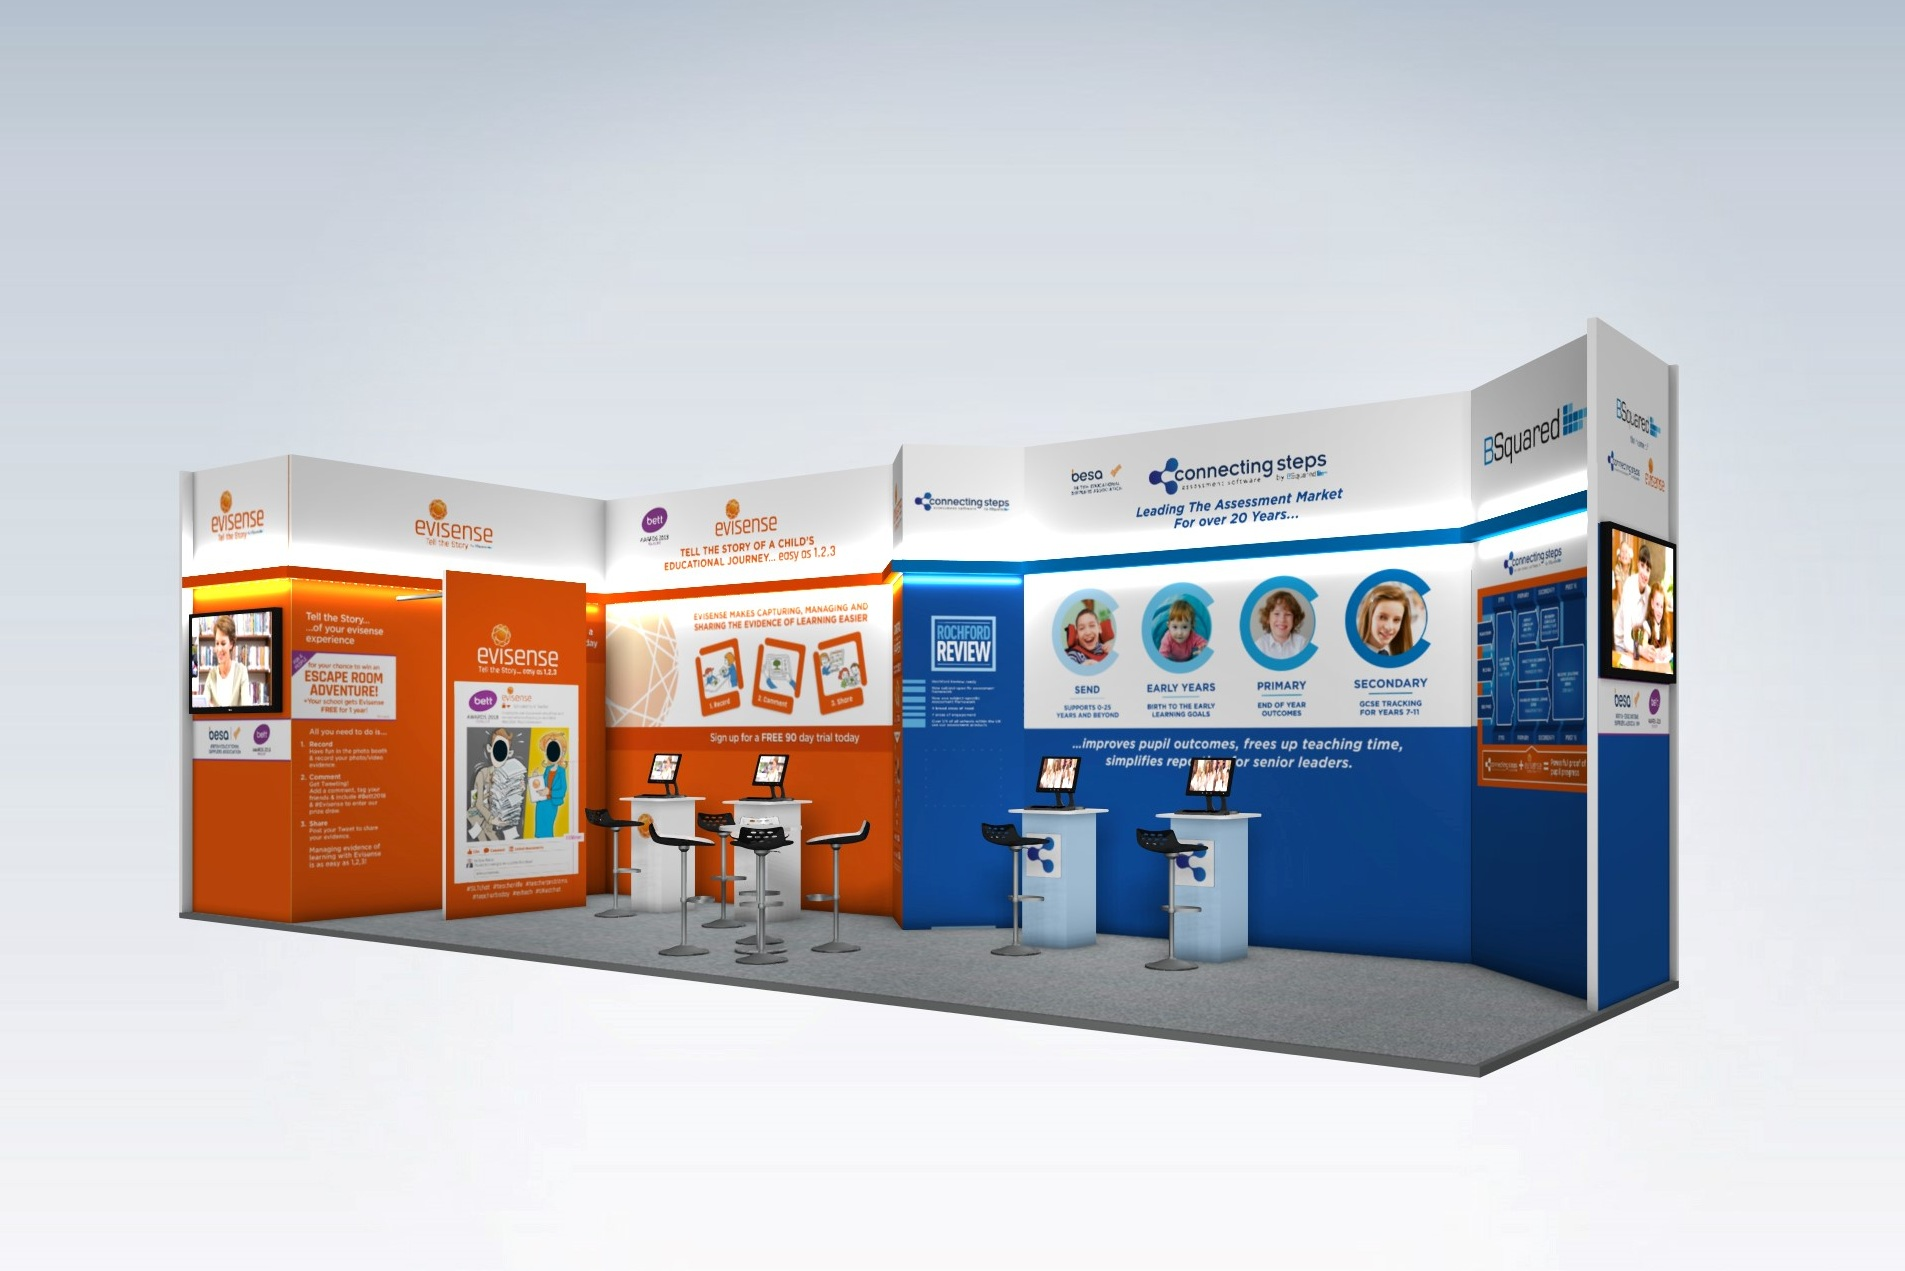 B Squared Exhibition Stand Design - With Photo Booth